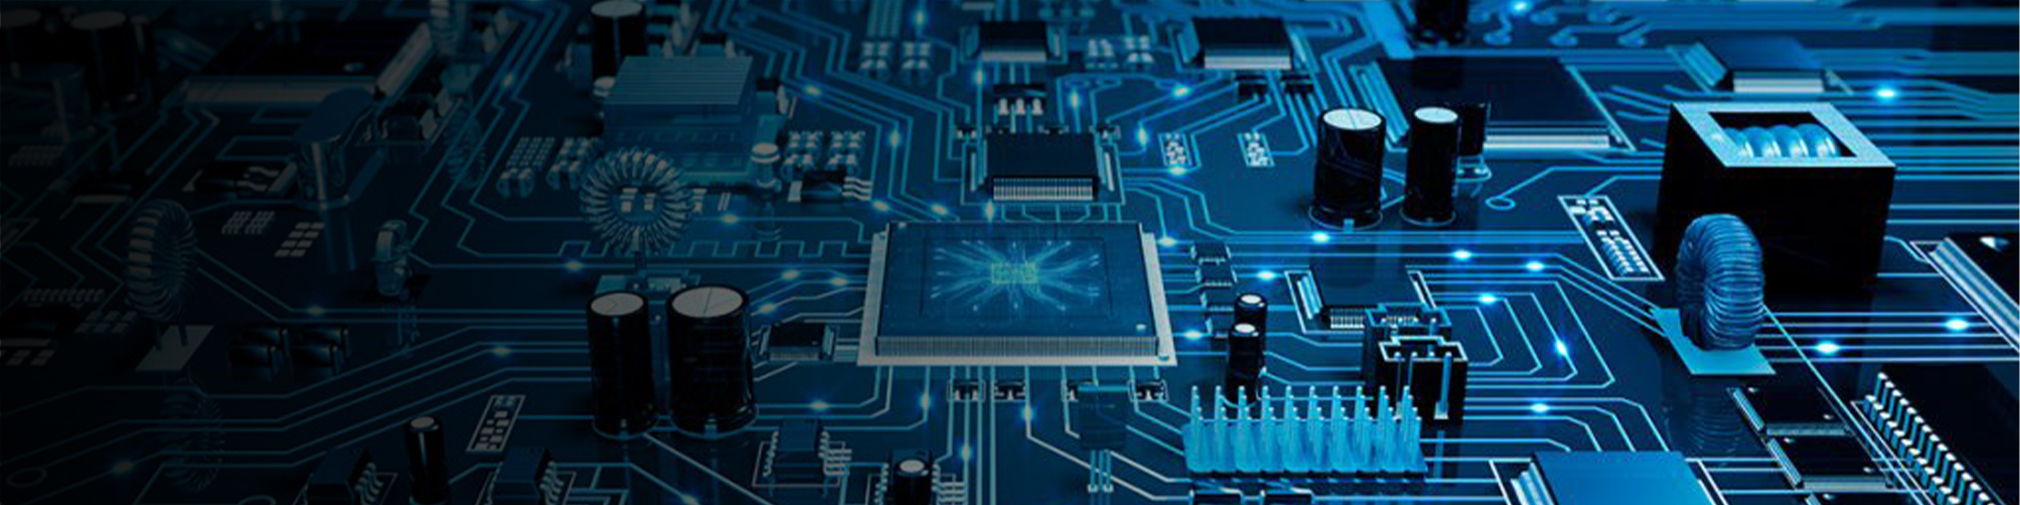 Chapter(15): Electronics Industry